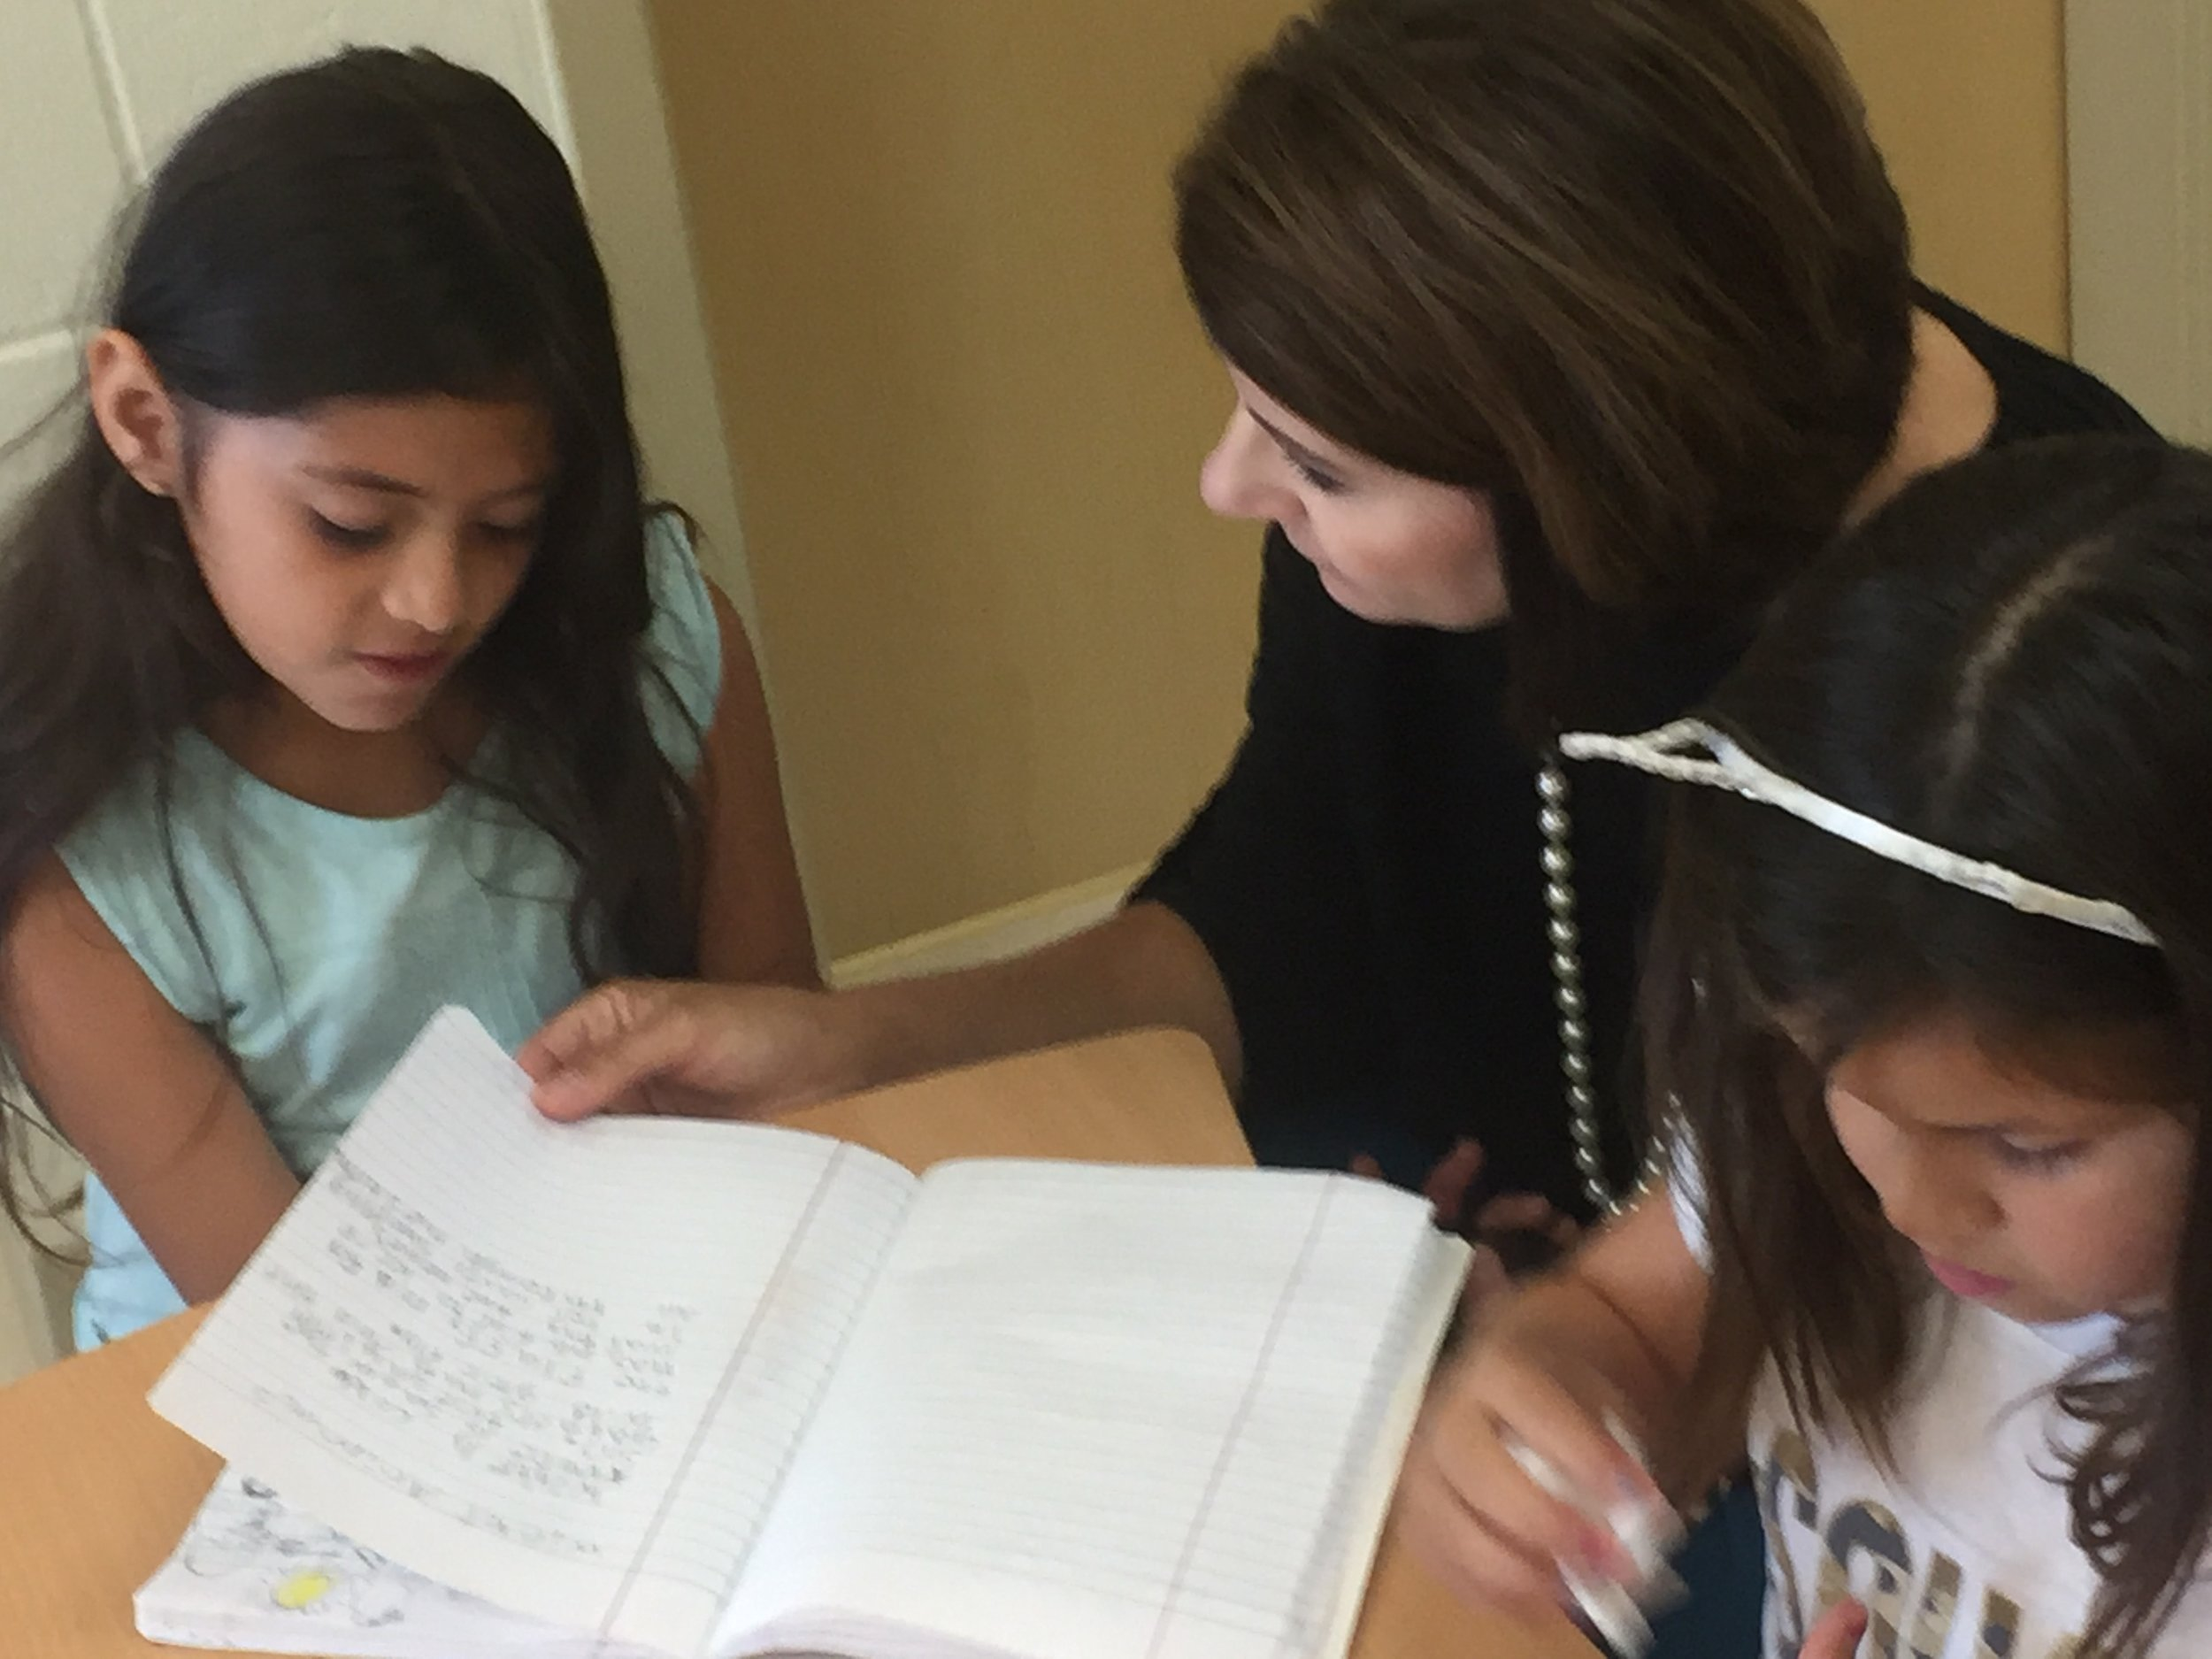 Journaling and one-on-one review time help build reading and literacy skills